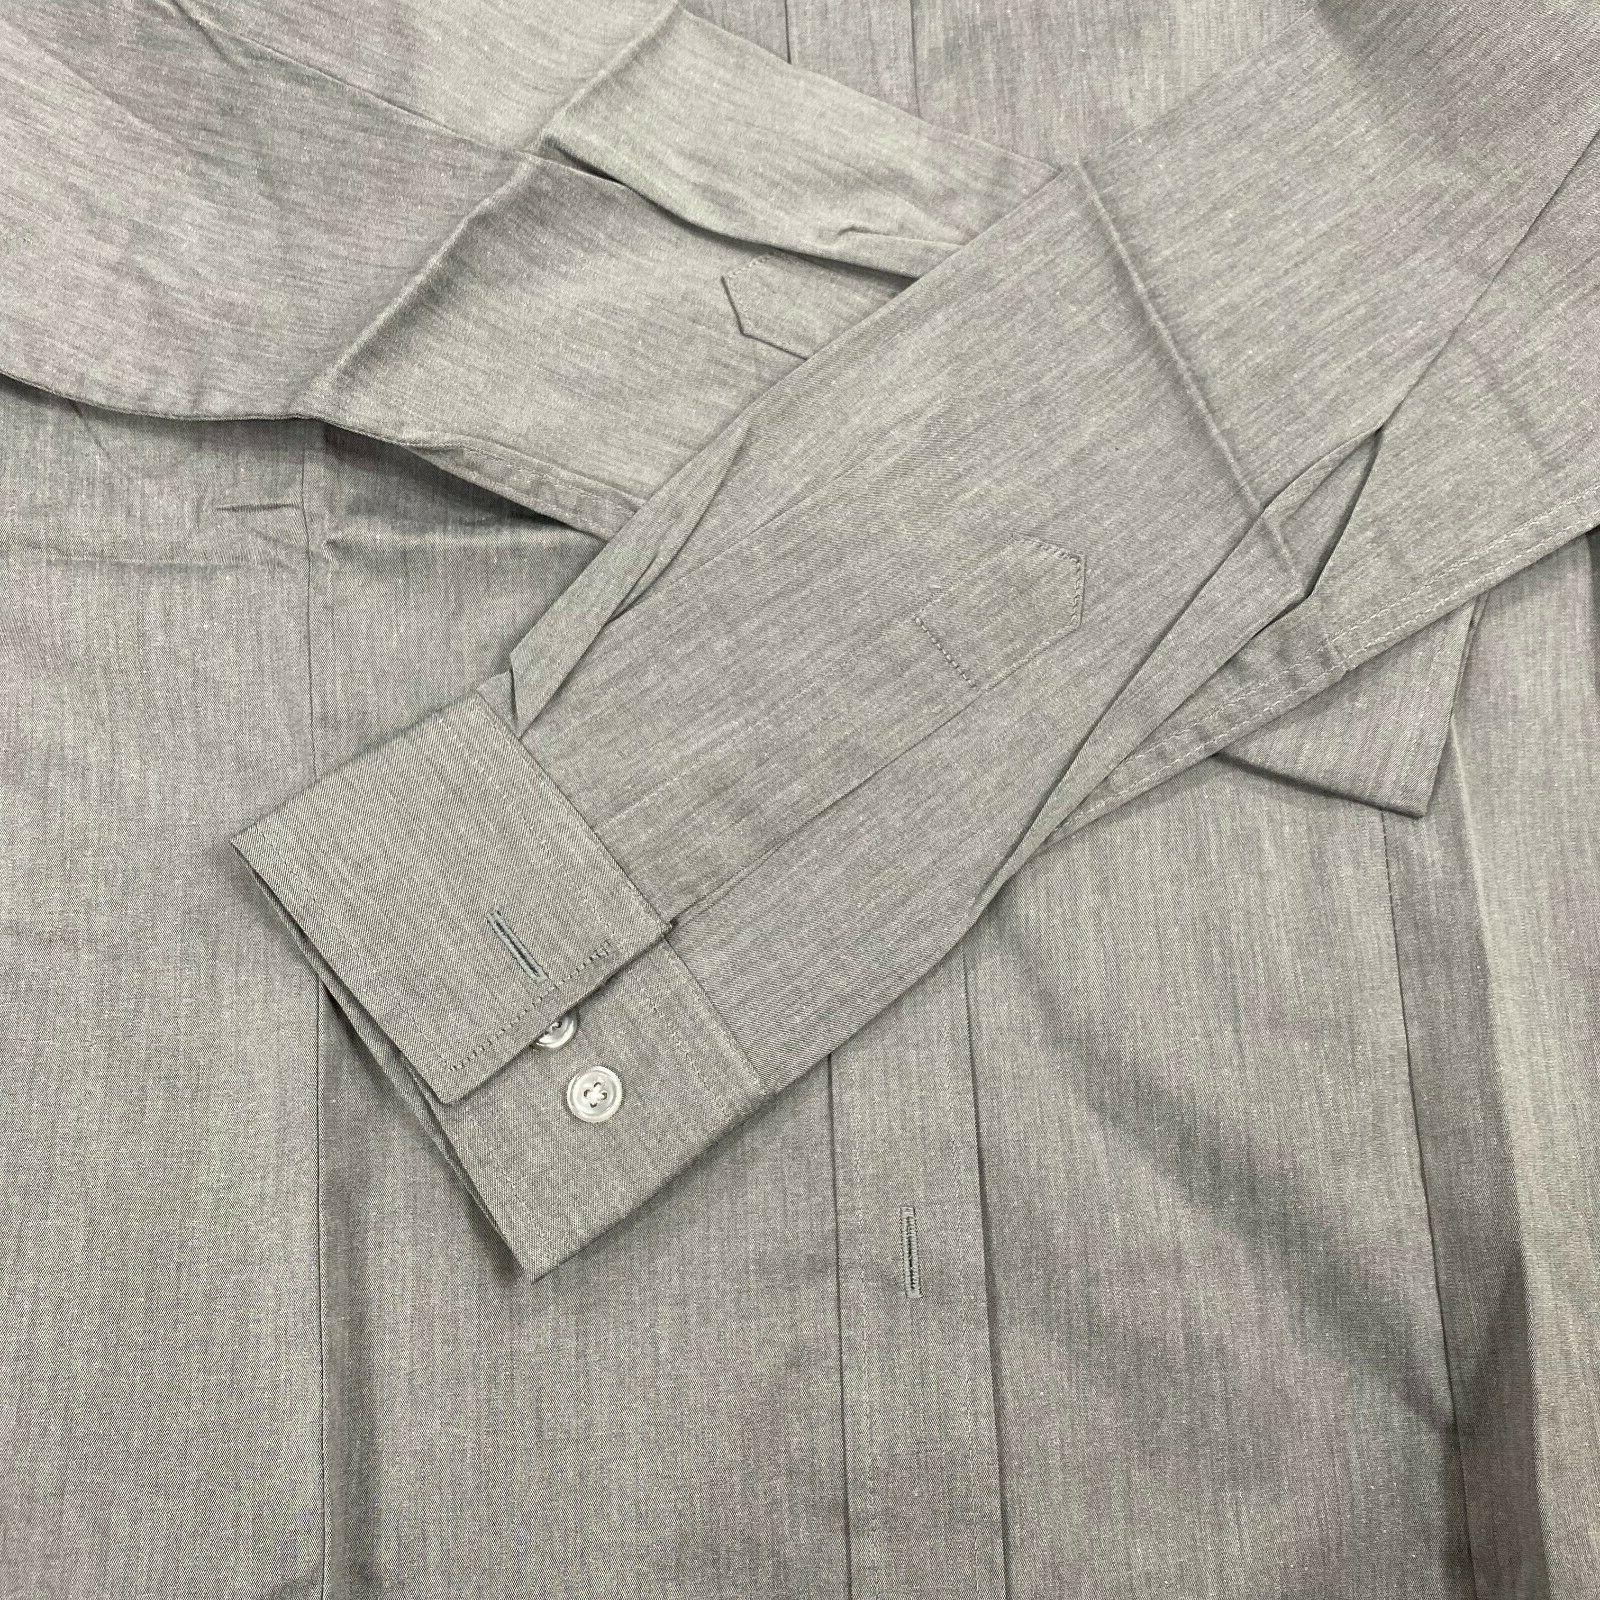 H2H fit gray size long sleeve button